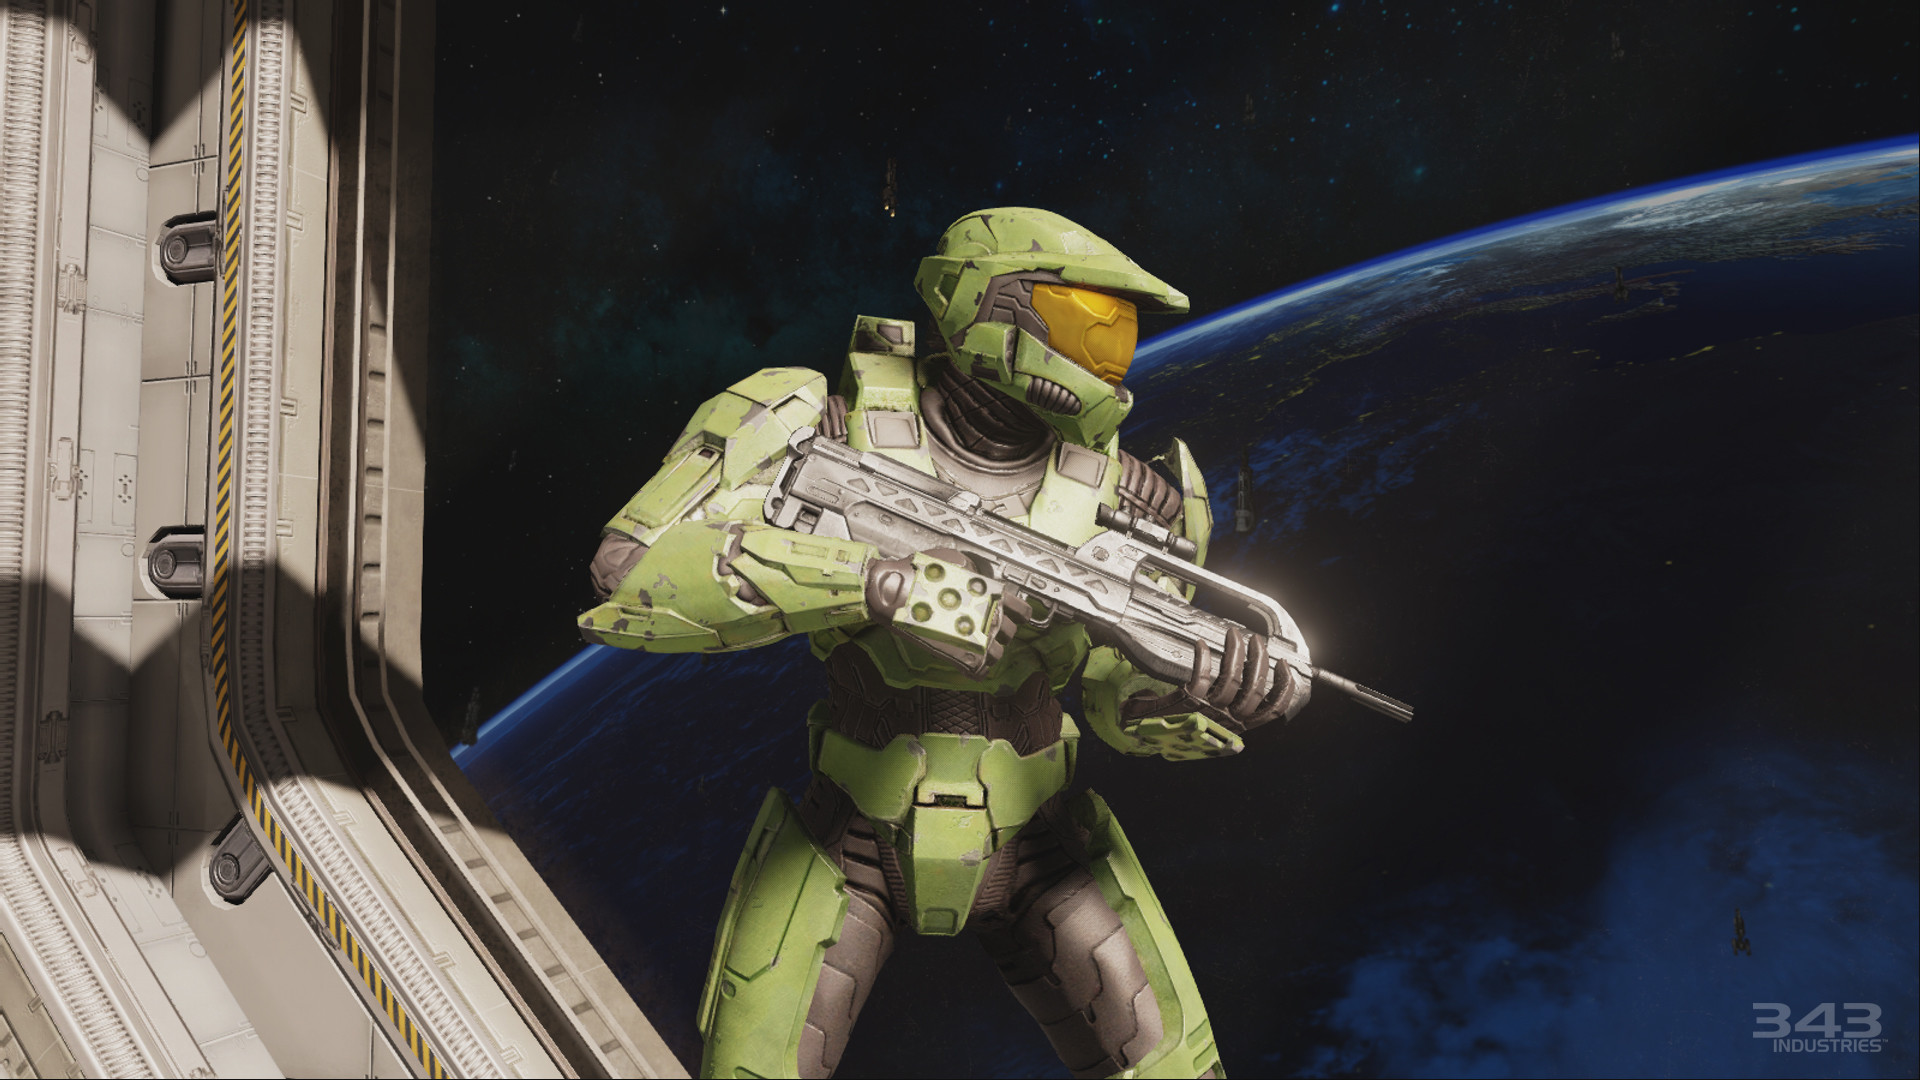 Halo 2 (Chiefs anniversary version because it is clearer)